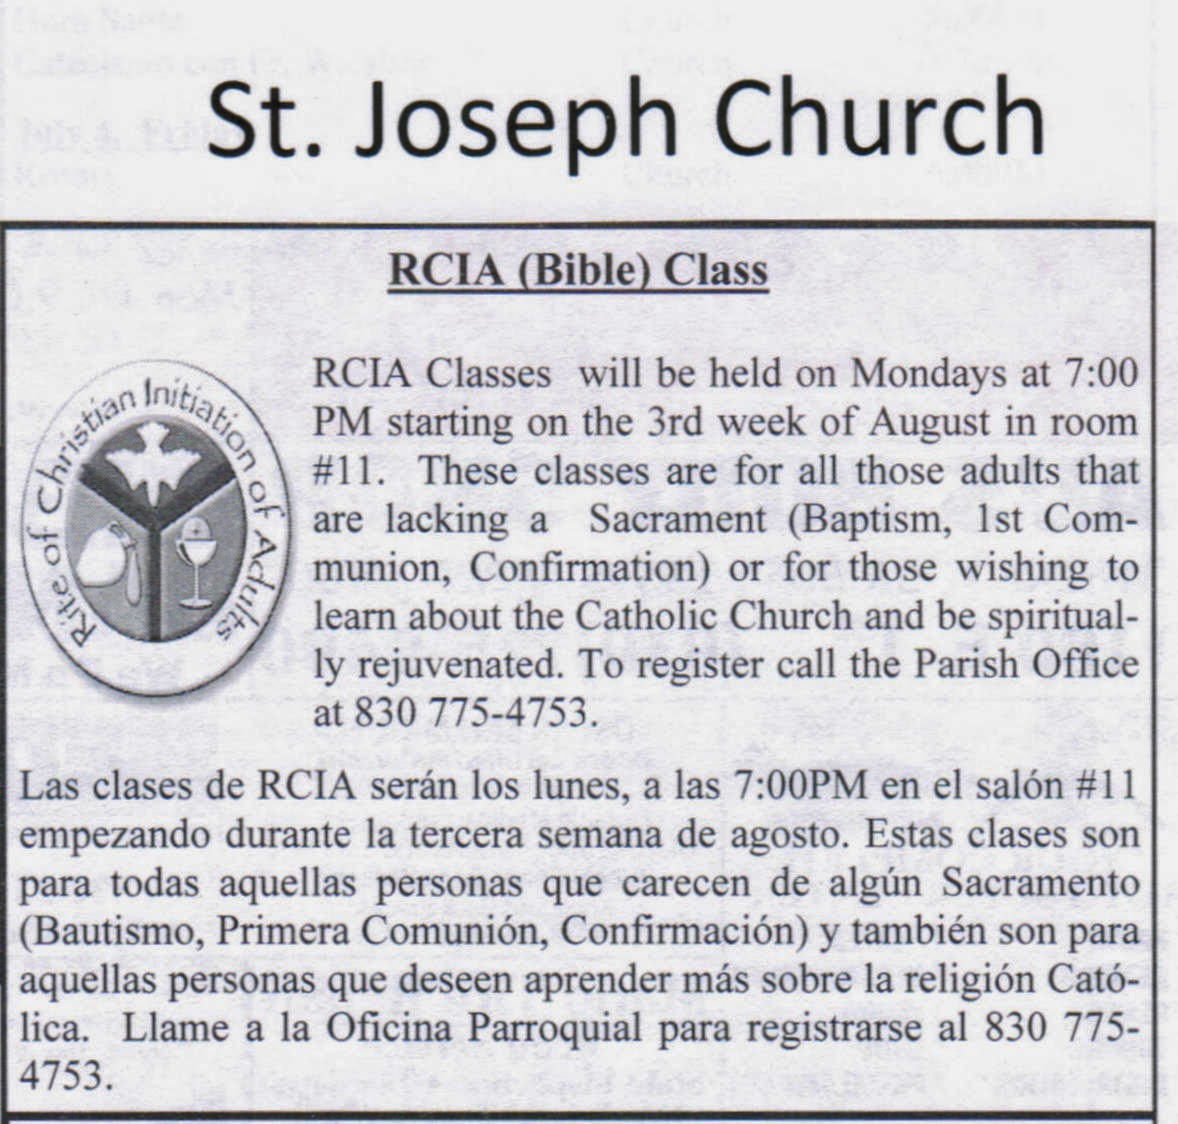 Starting Third Week in August 2014: St. Joseph RCIA Class Mondays 7:00 pm Room #11